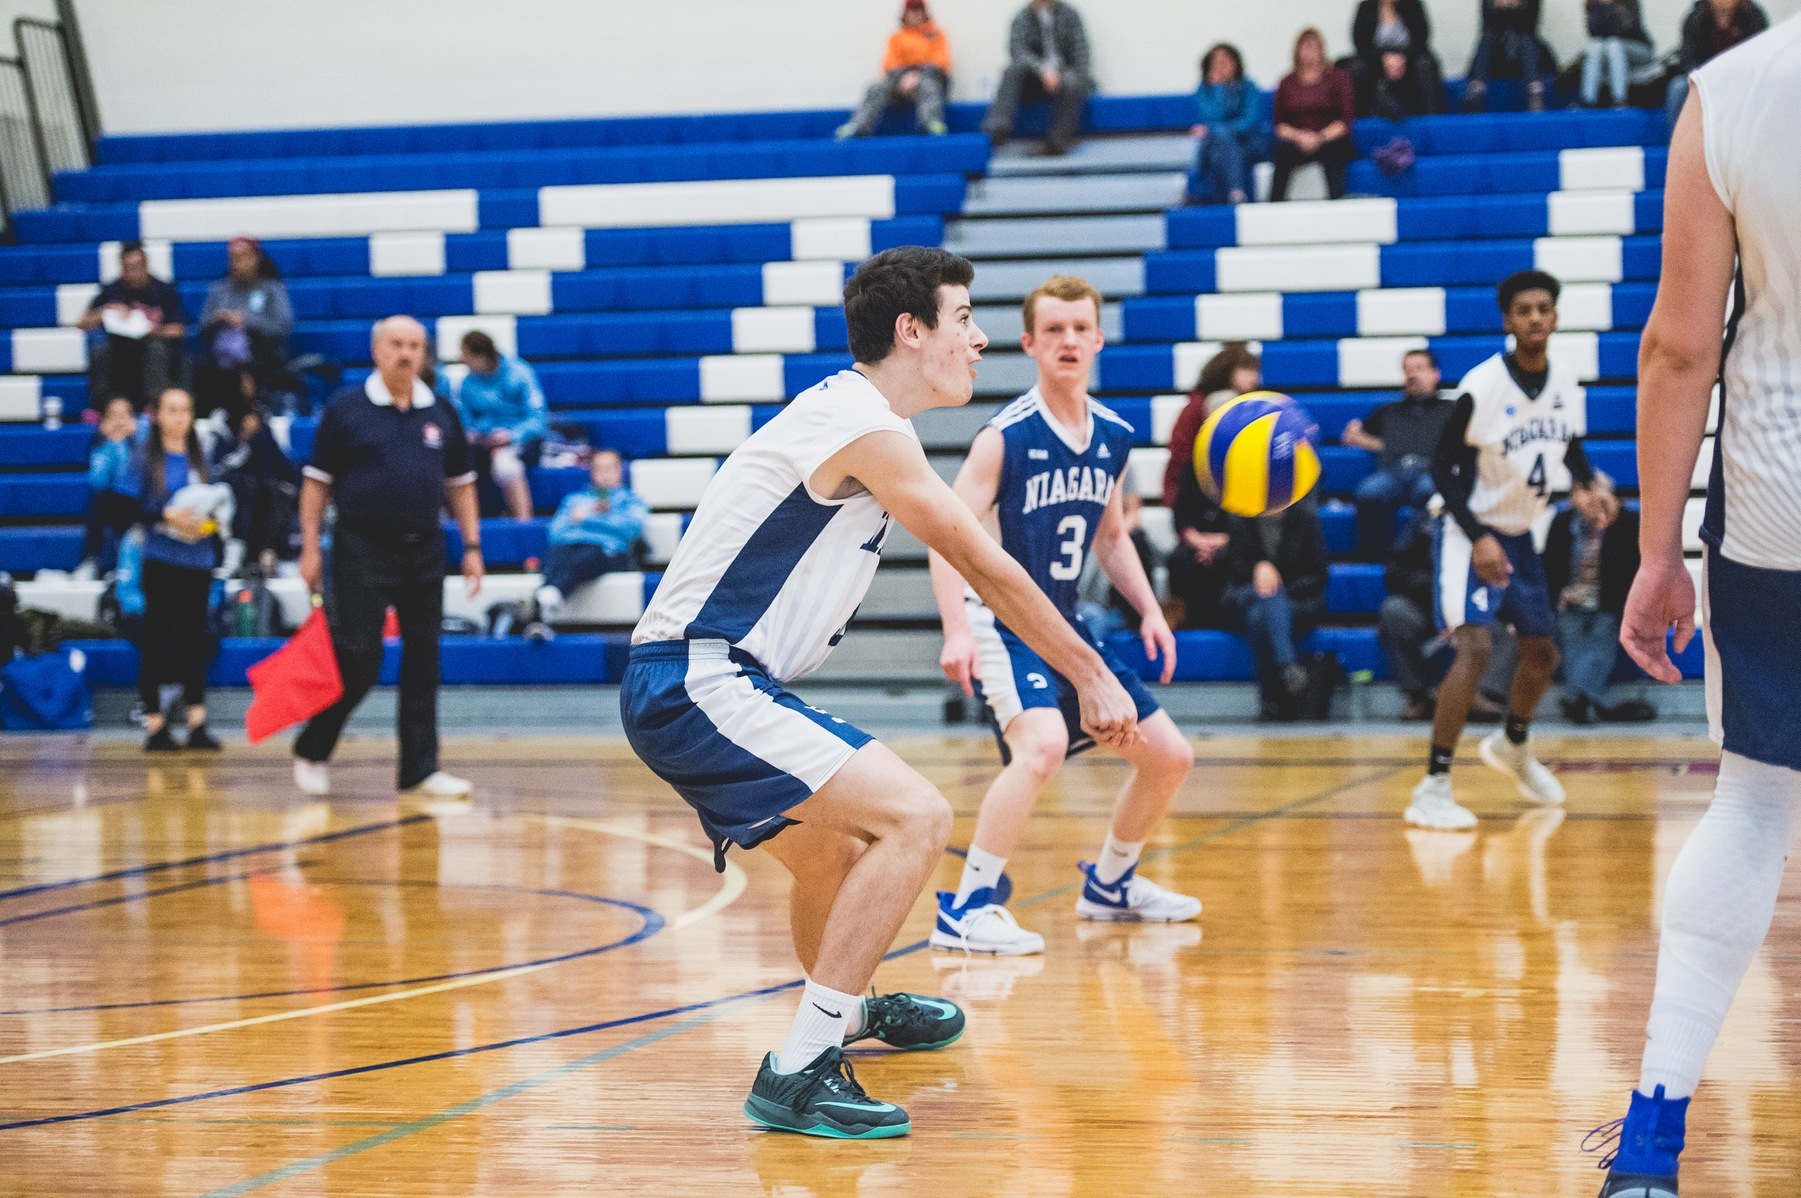 RECAP: Men's Volleyball Impressive in 2018 debut